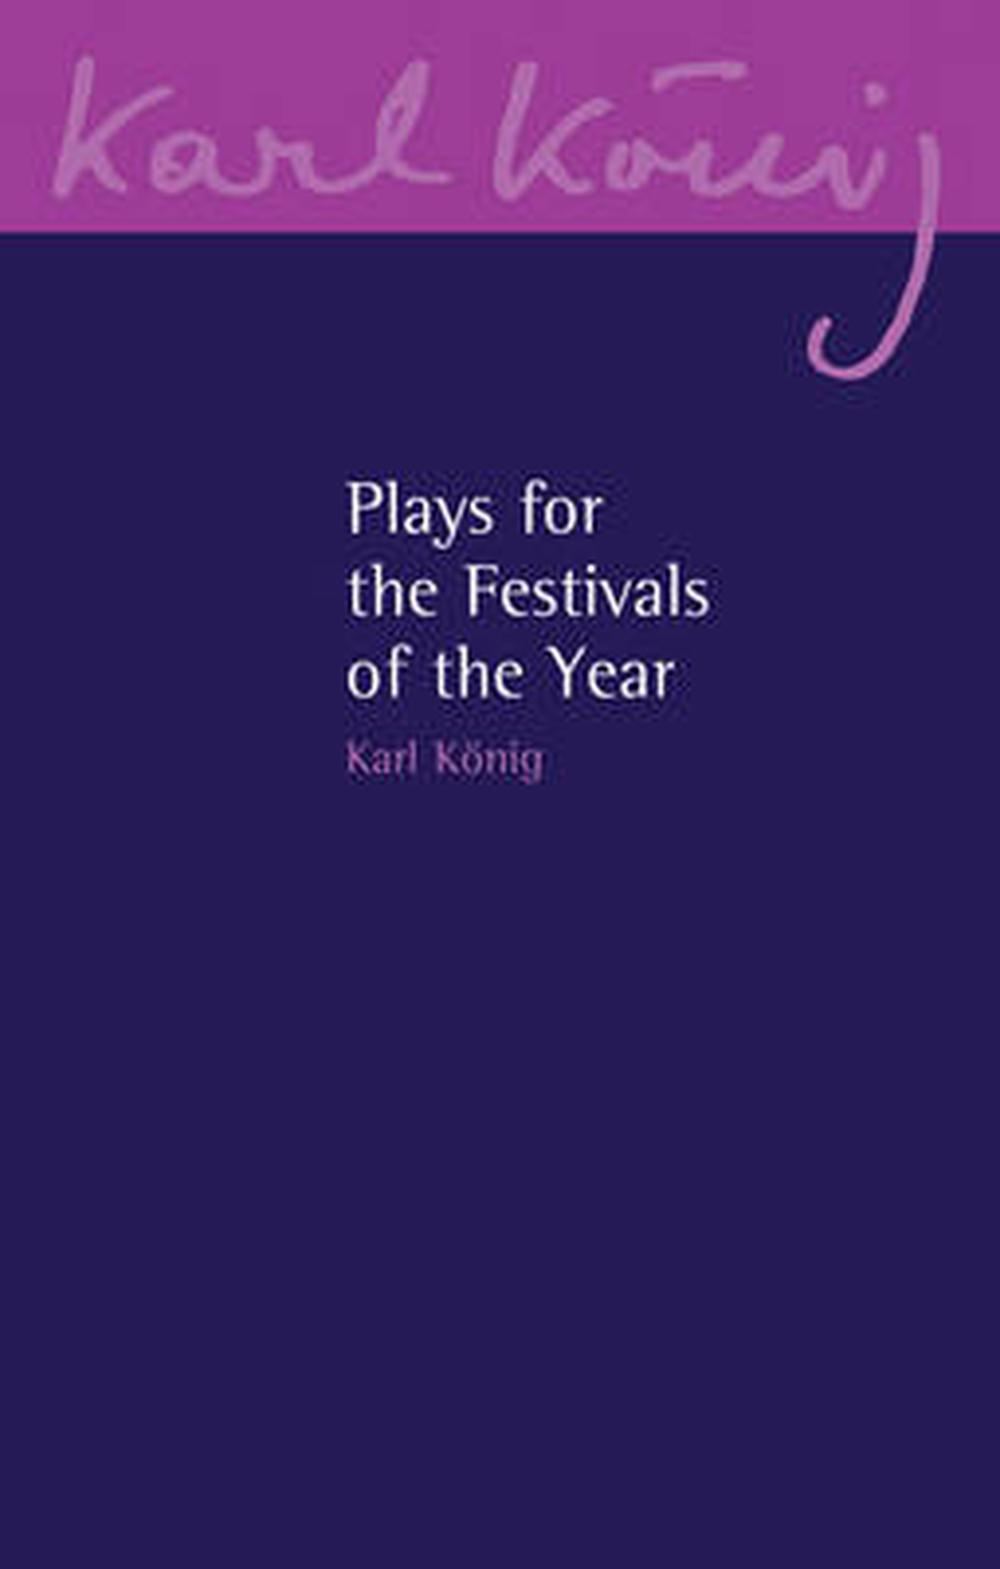 Plays for the Festivals of the Year